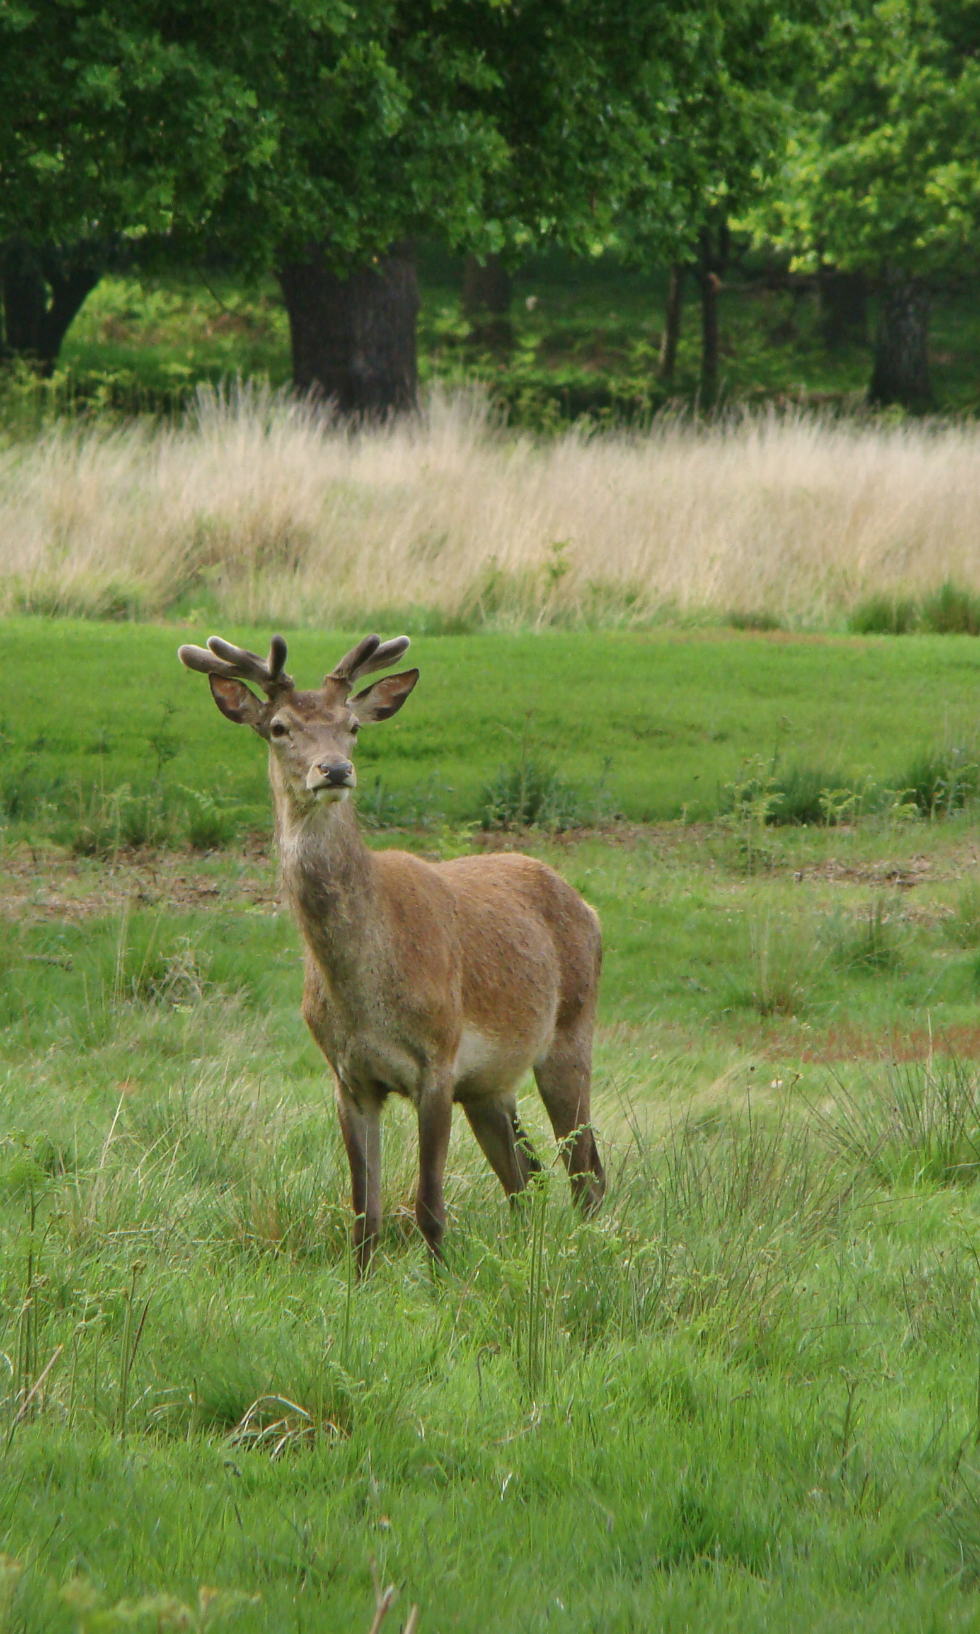 A red deer stag, Richmond Park, London, 20 May 2016